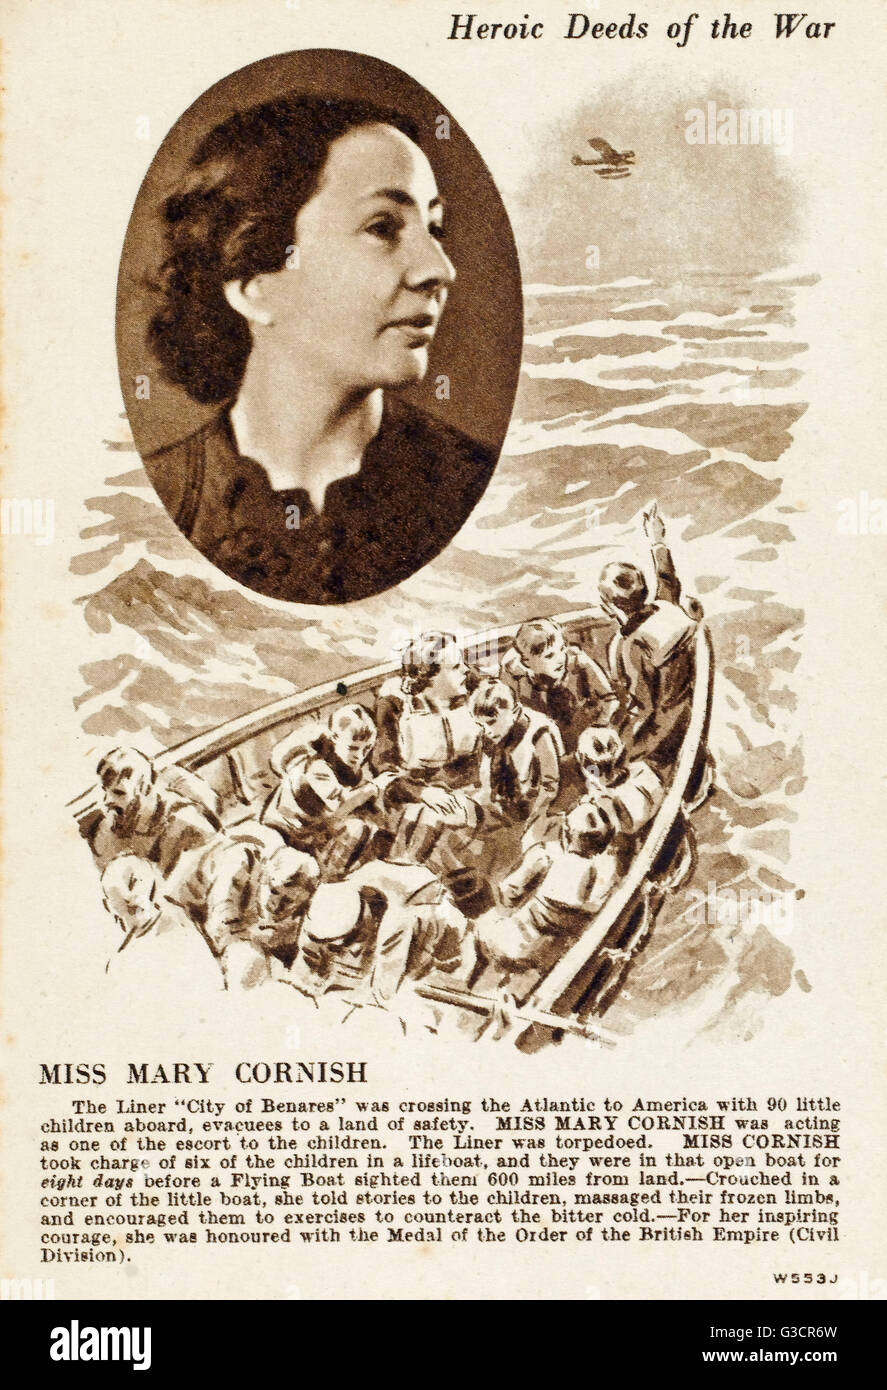 Heroic Deeds of the War - Miss Mary Cornish. During the Second World War the City of Benares was used as an evacuee - Stock Image